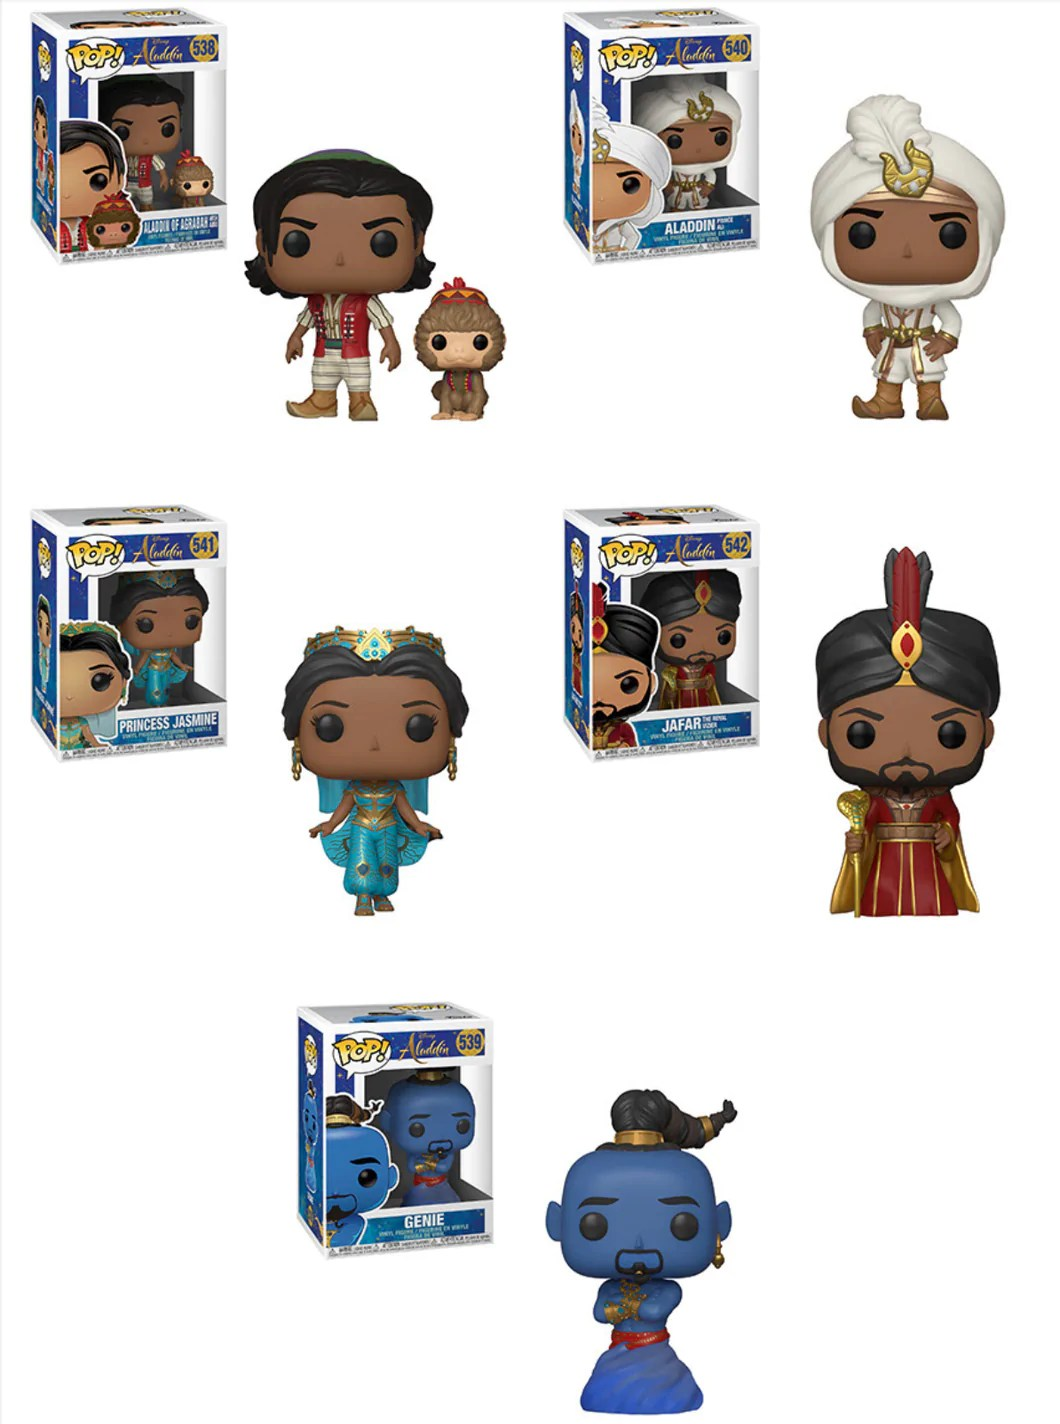 Aladdin Abu Png Funko Pop Disney Aladdin Movie Singles Poppin Off Toys